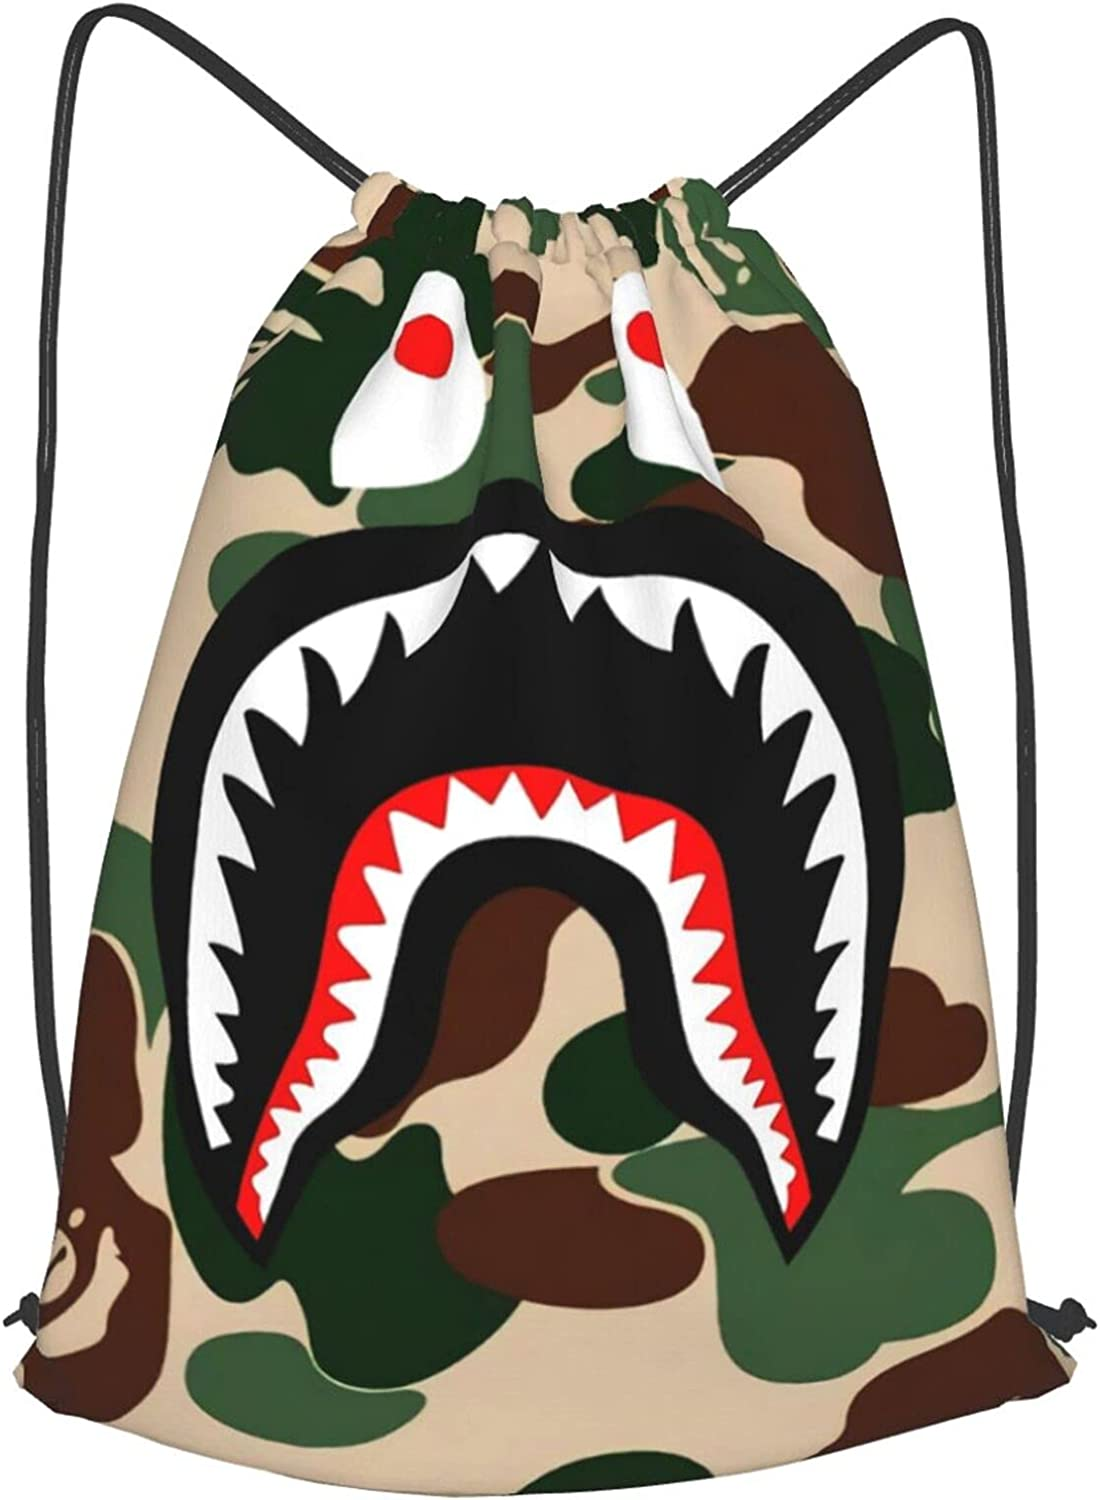 AAPE Bape Shark Camo Backpack Resistan Sackpack Drawstring Water Sale Super sale period limited special price